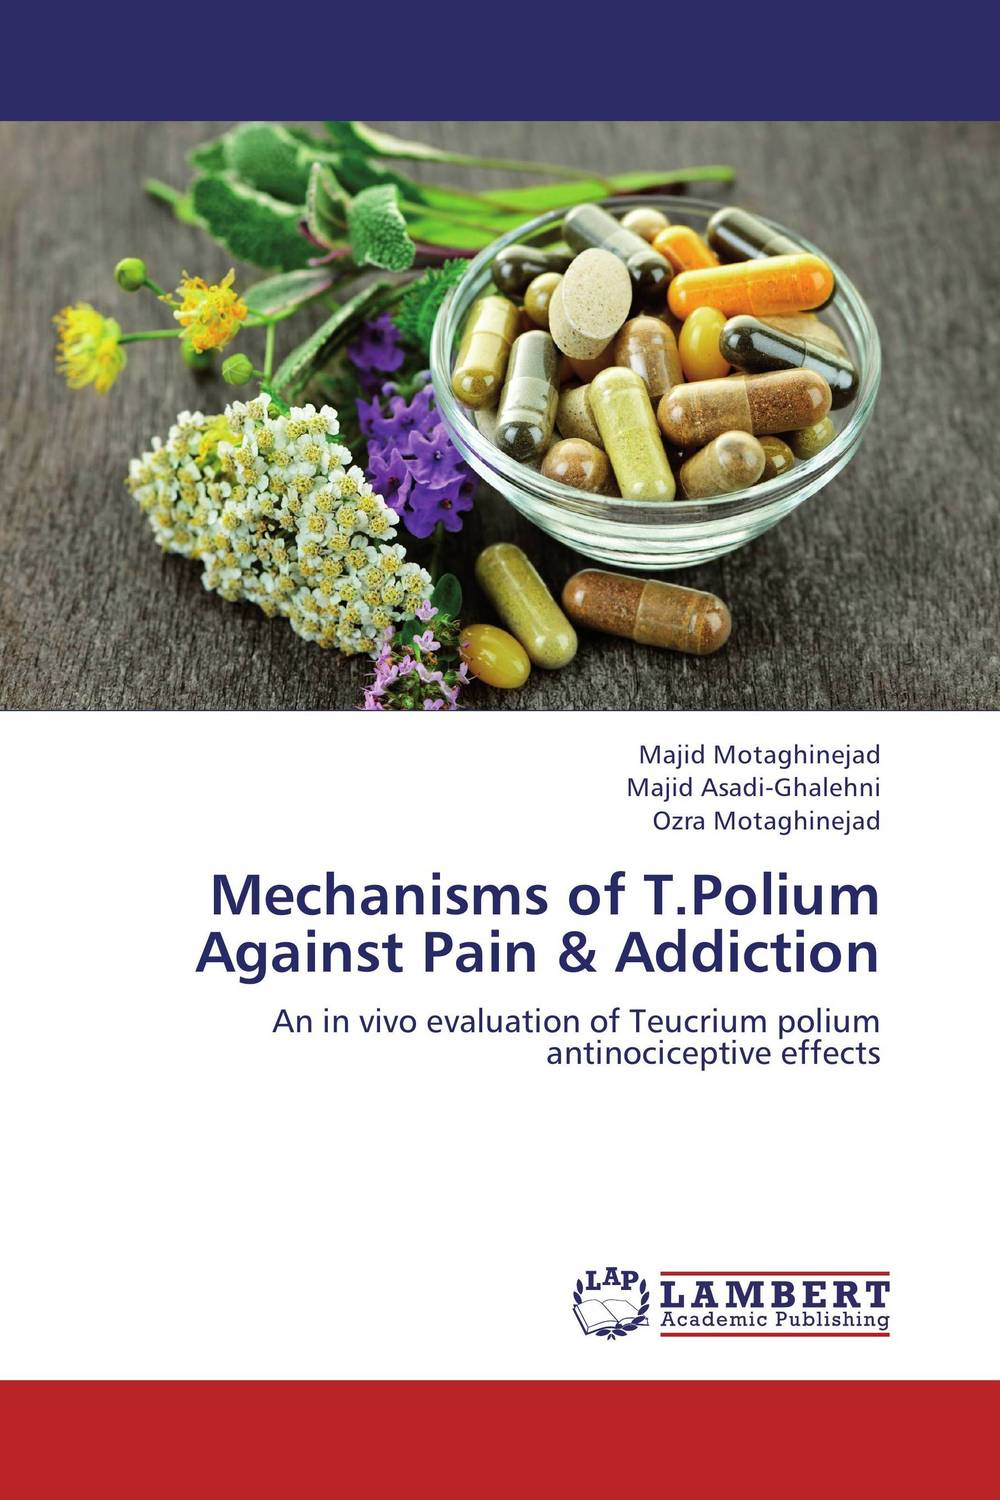 Mechanisms of T.Polium Against Pain & Addiction exercise effects on morphine